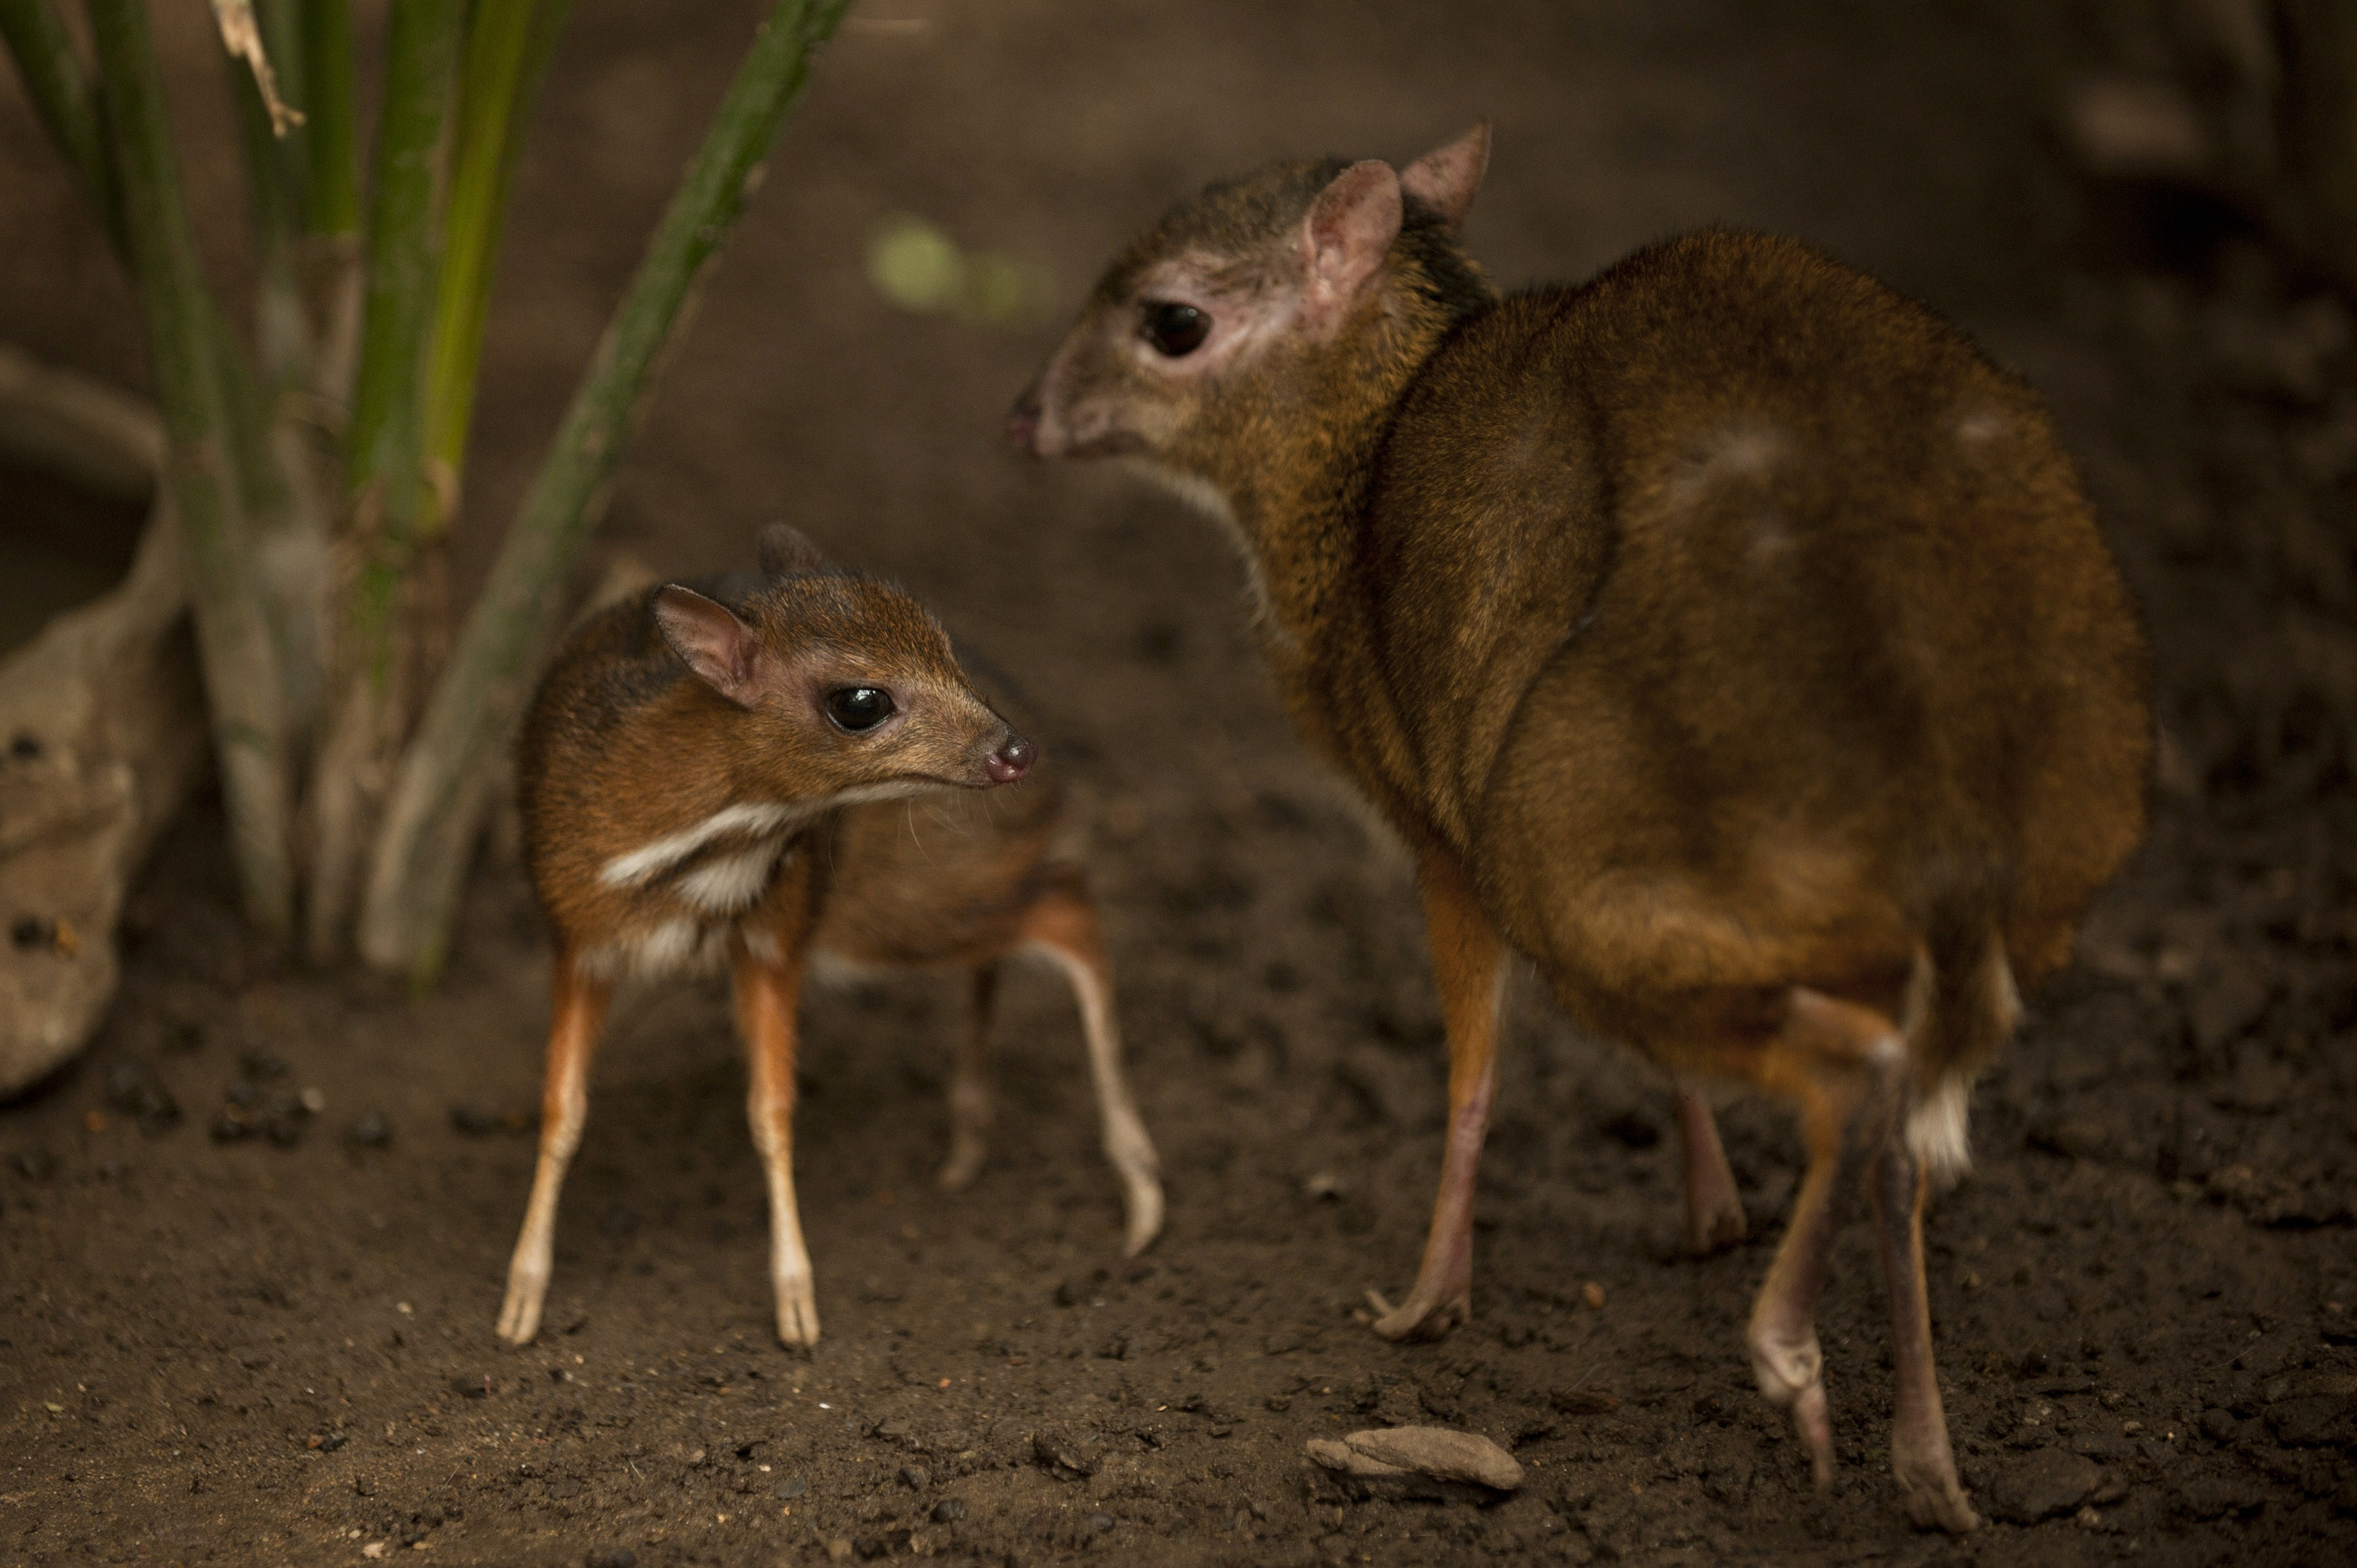 A Java mouse-deer cub, one of the world's smallest hoofed animals, and its mother at the Fuengirola Biopark, near Malaga, Spain on April 25, 2014.